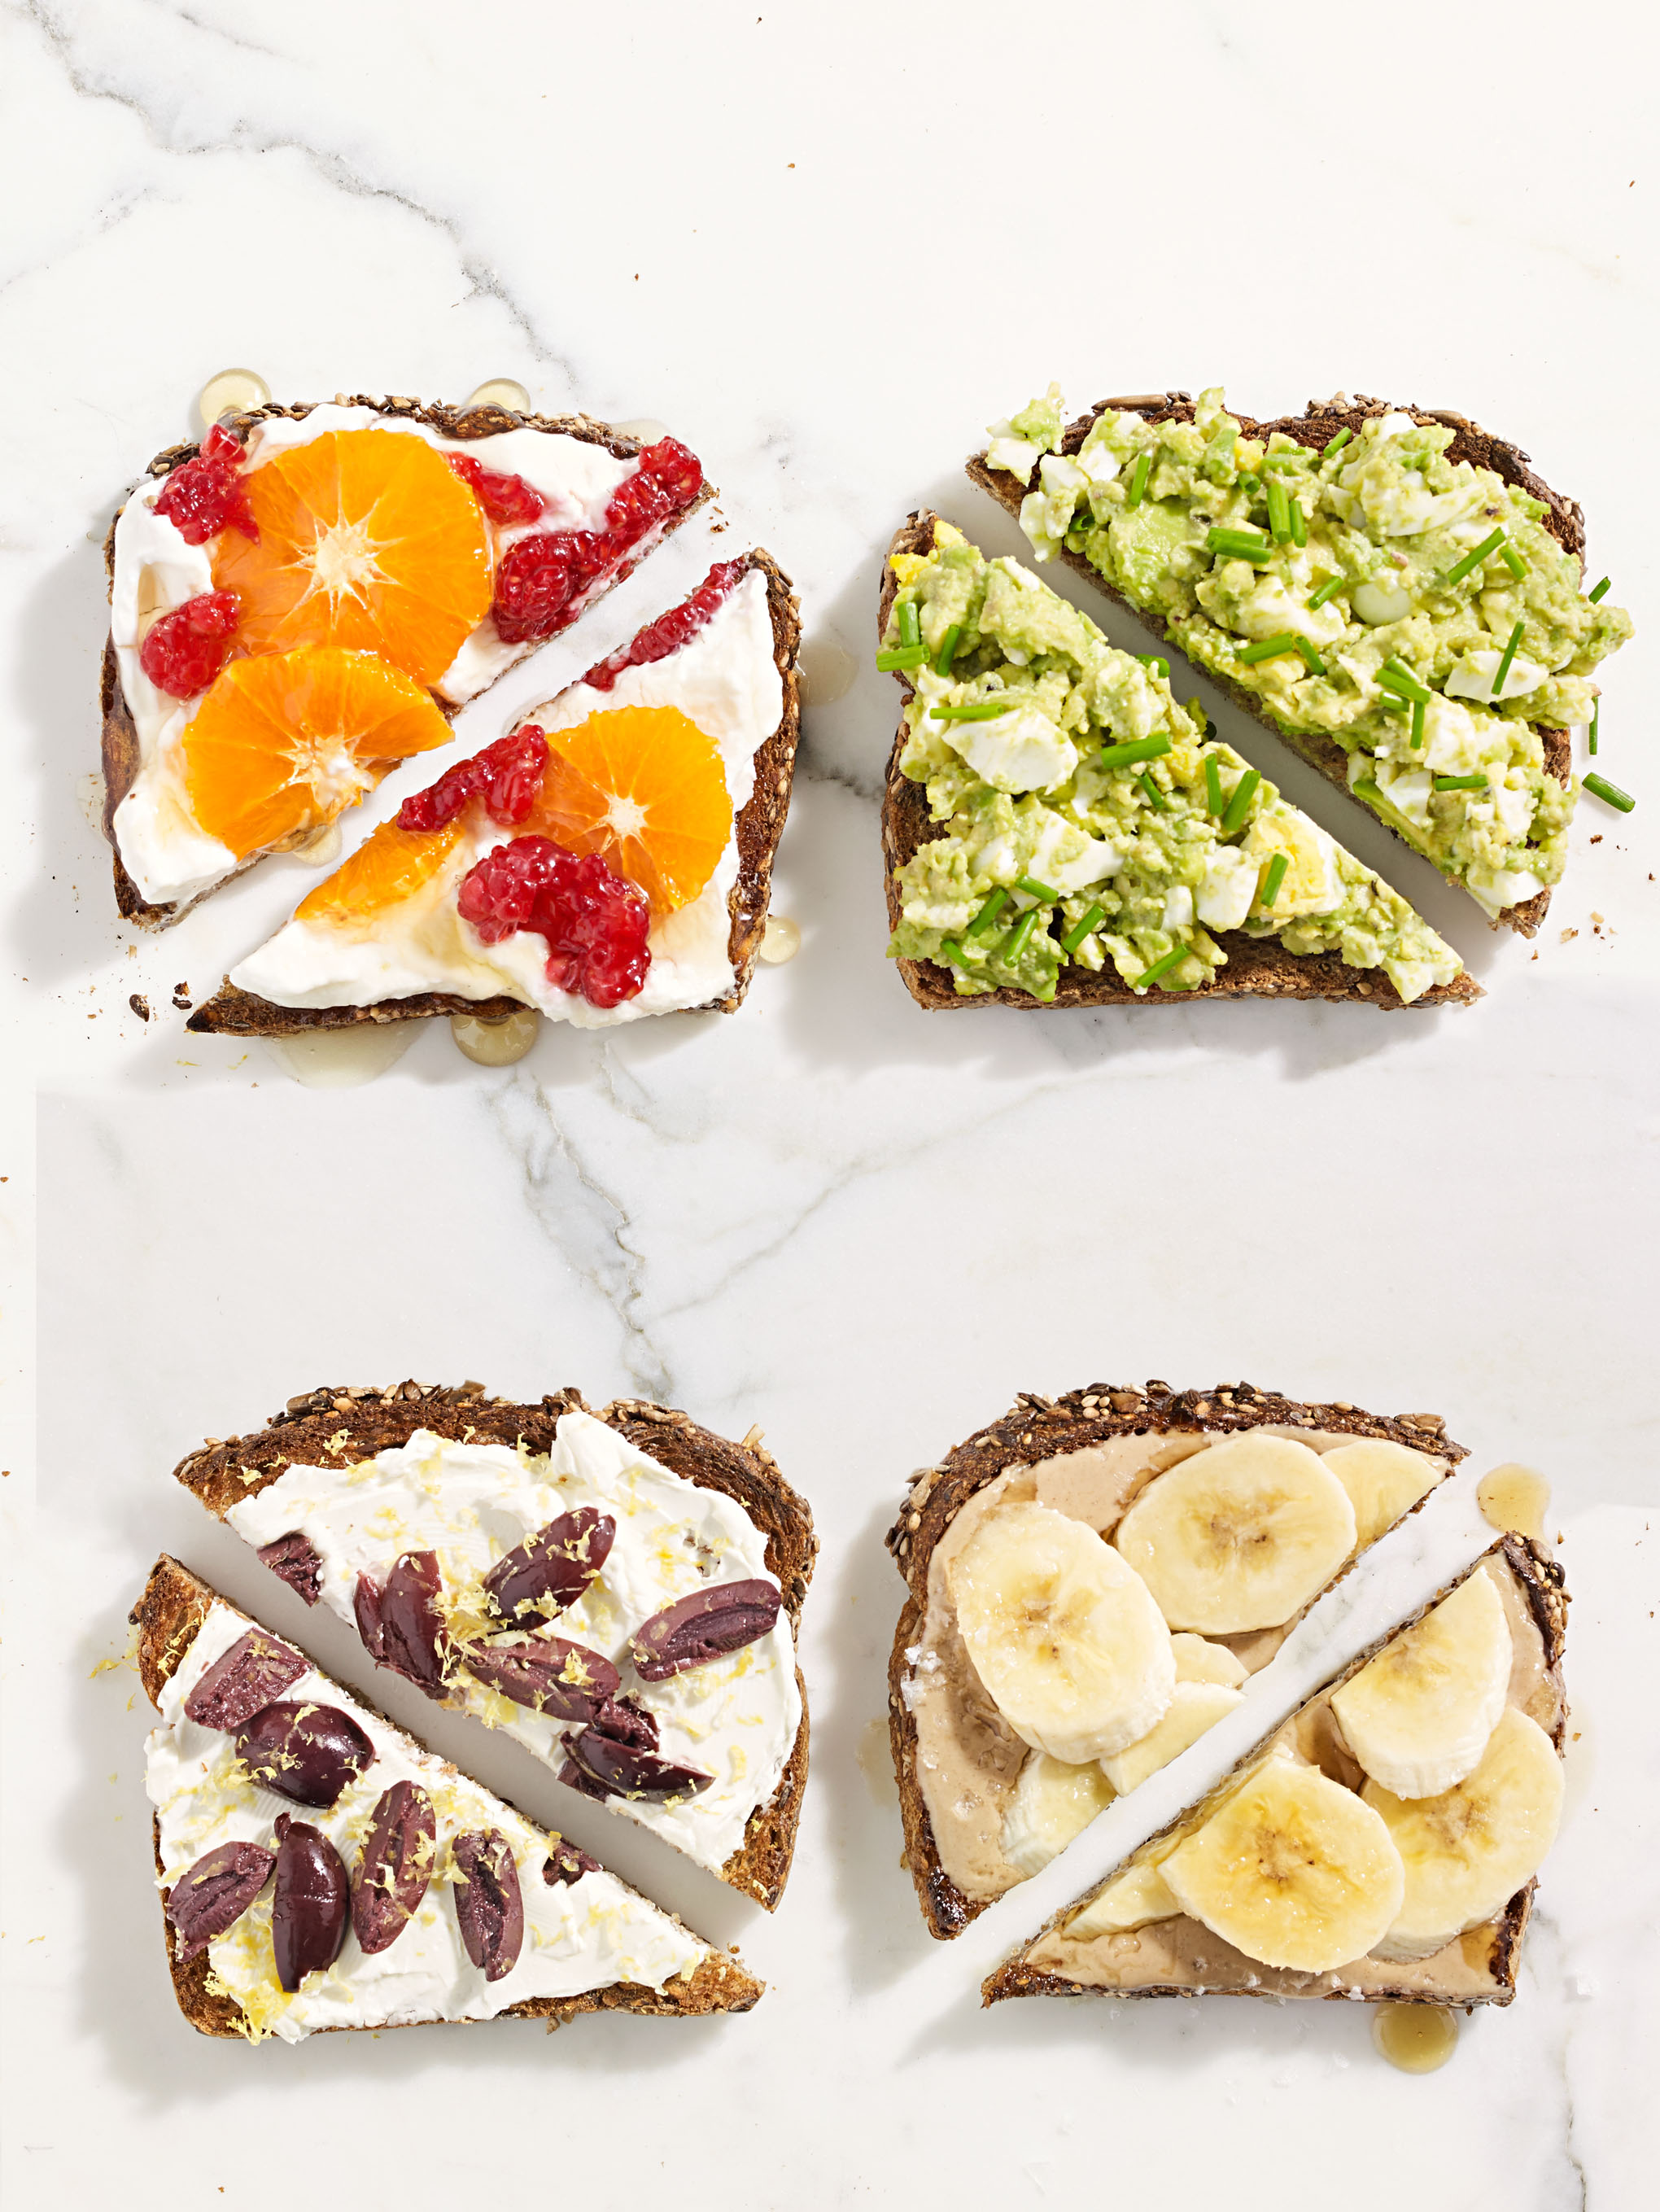 In a Breakfast Rut? 9 Inspired Ways to Kickstart Your Morning